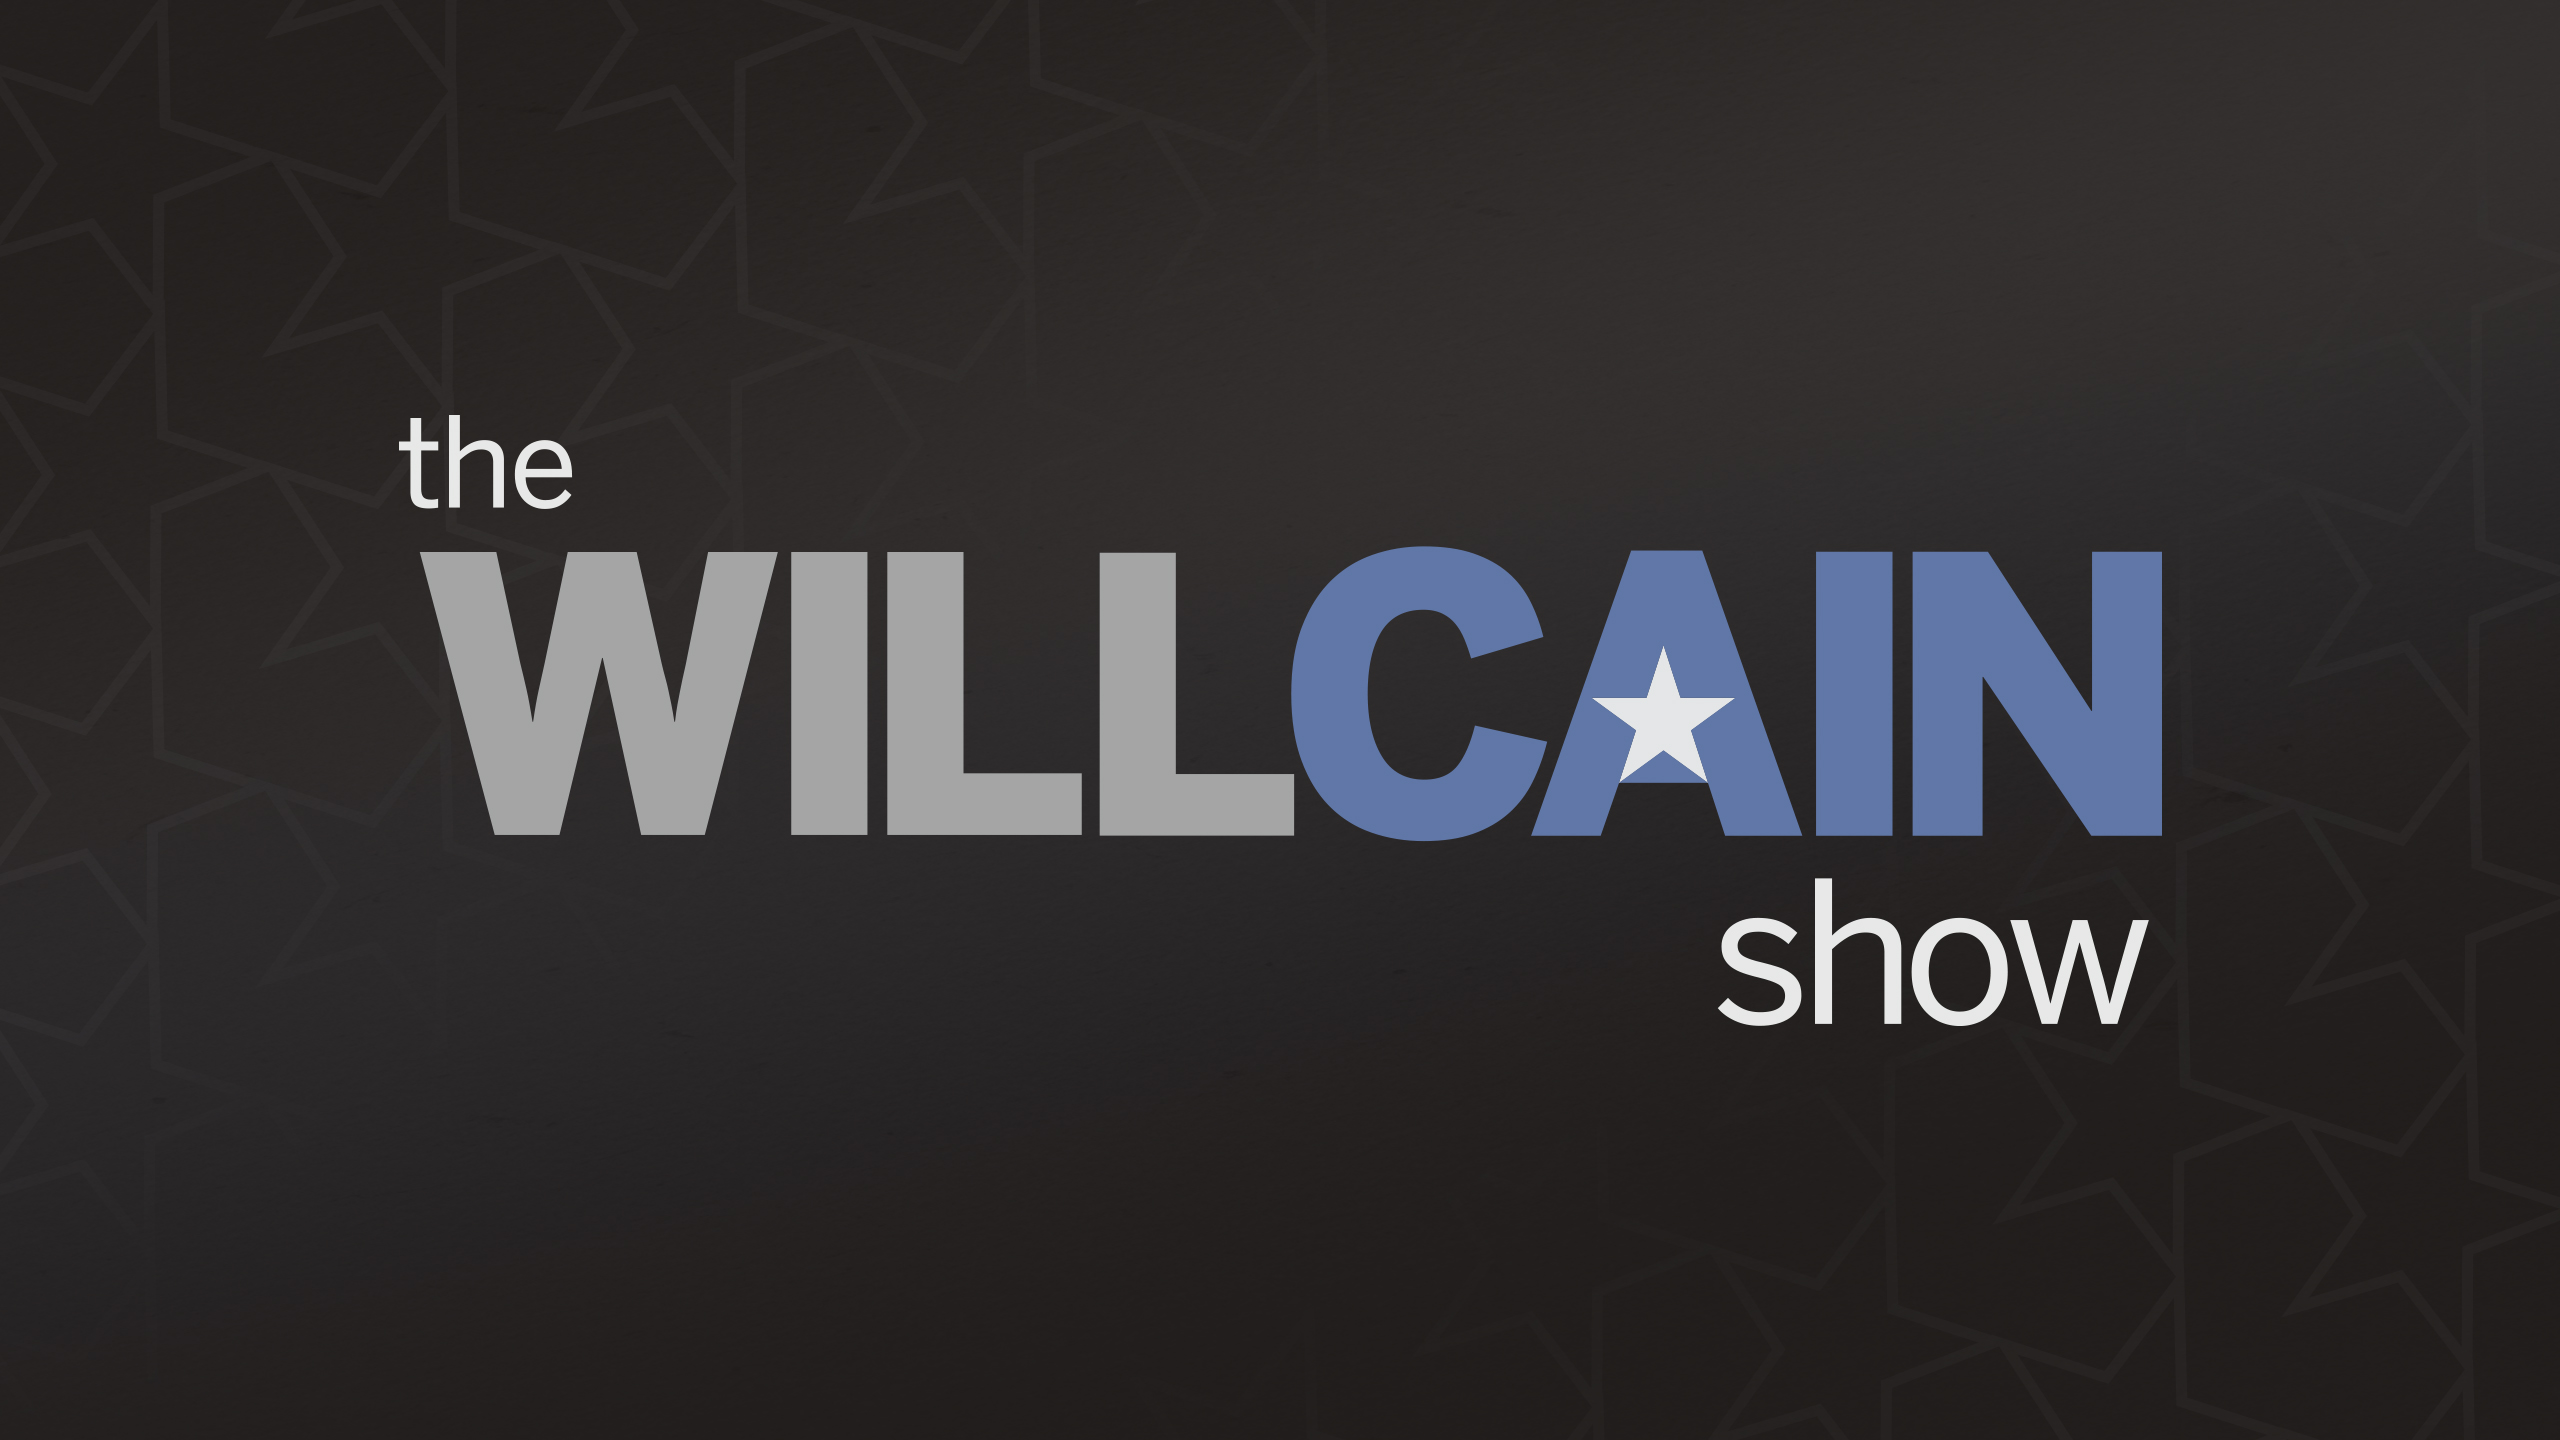 Thu, 2/14 - The Will Cain Show Presented by Progressive